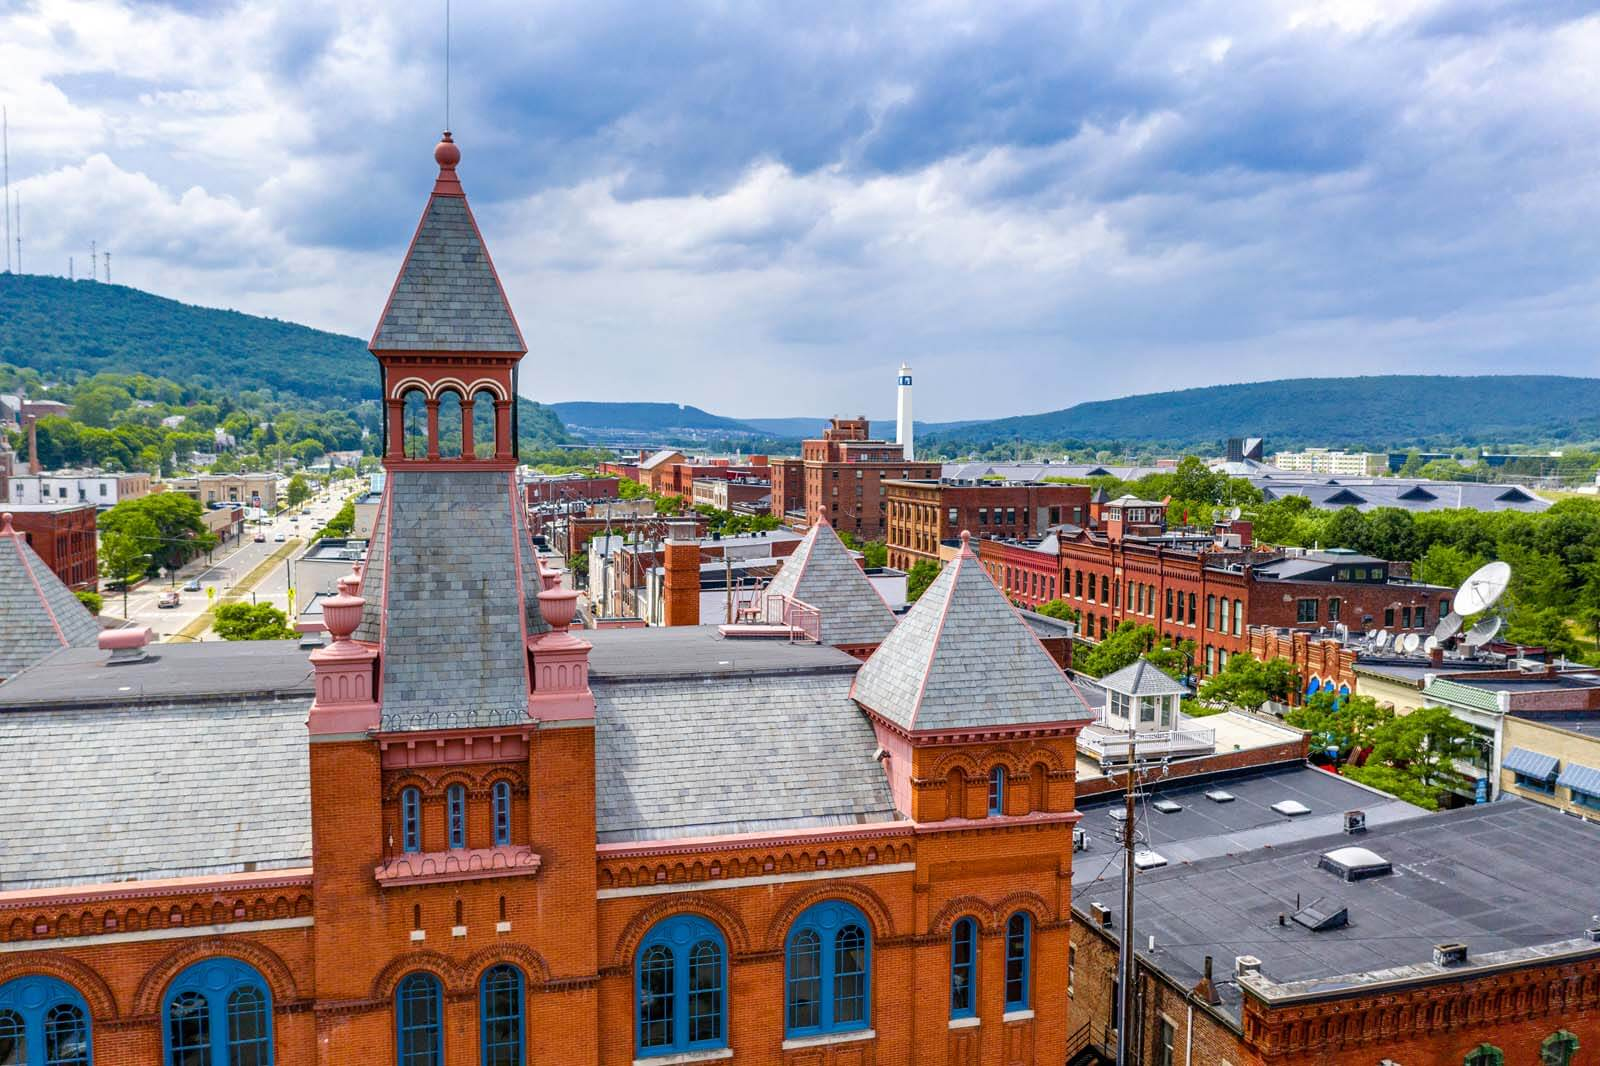 aerial view of Corning New York a charming Finger Lakes town in New York